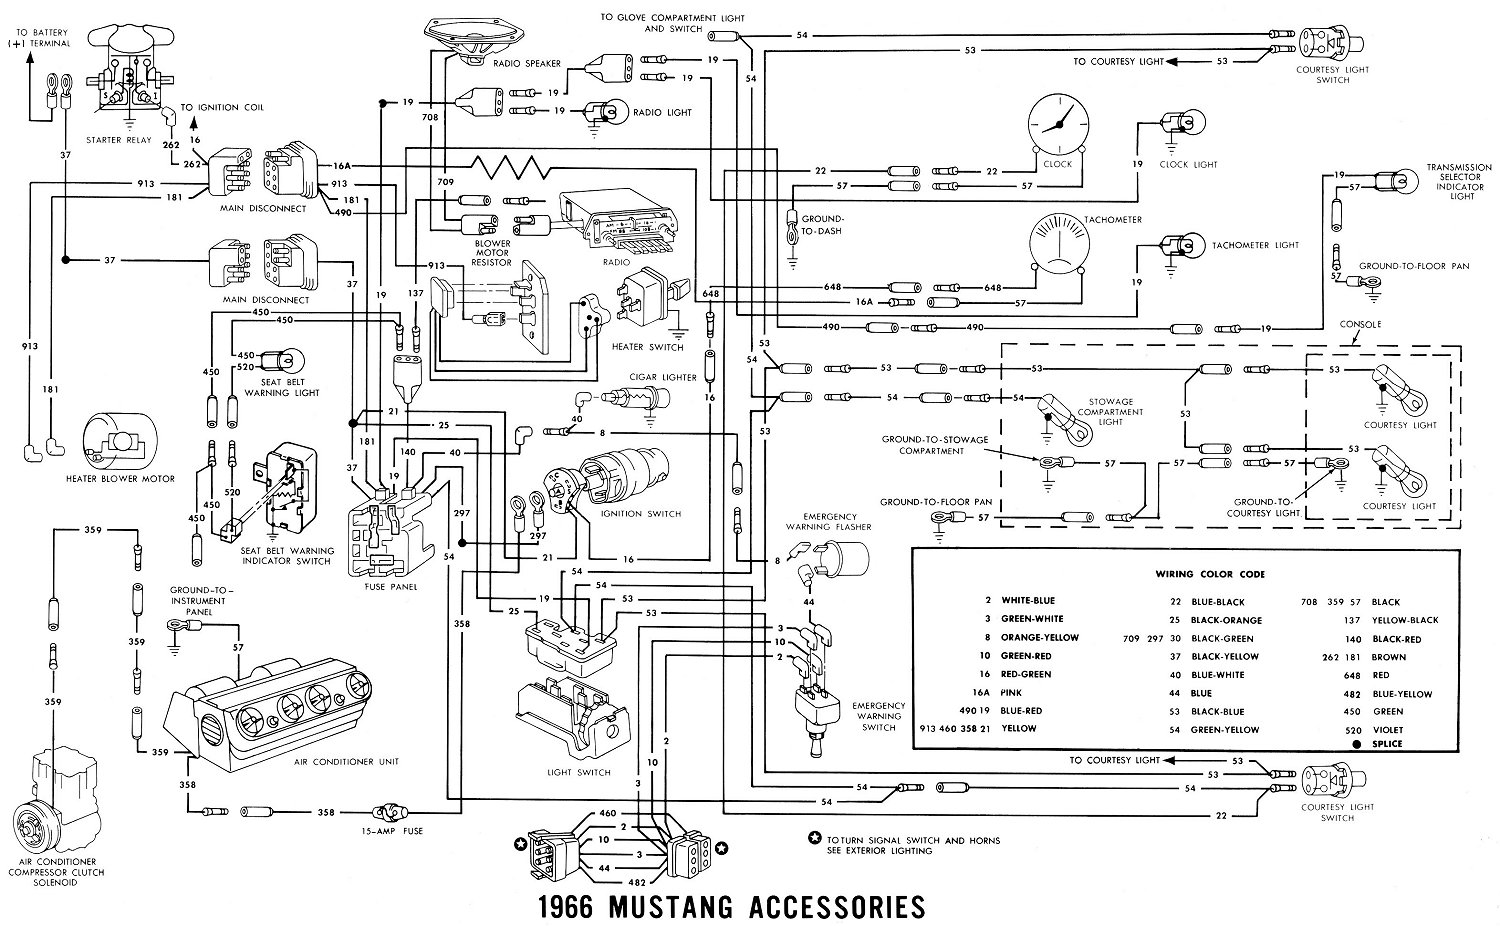 66acces1 1966 mustang wiring diagrams average joe restoration 2007 ford mustang gt wiring diagram at creativeand.co